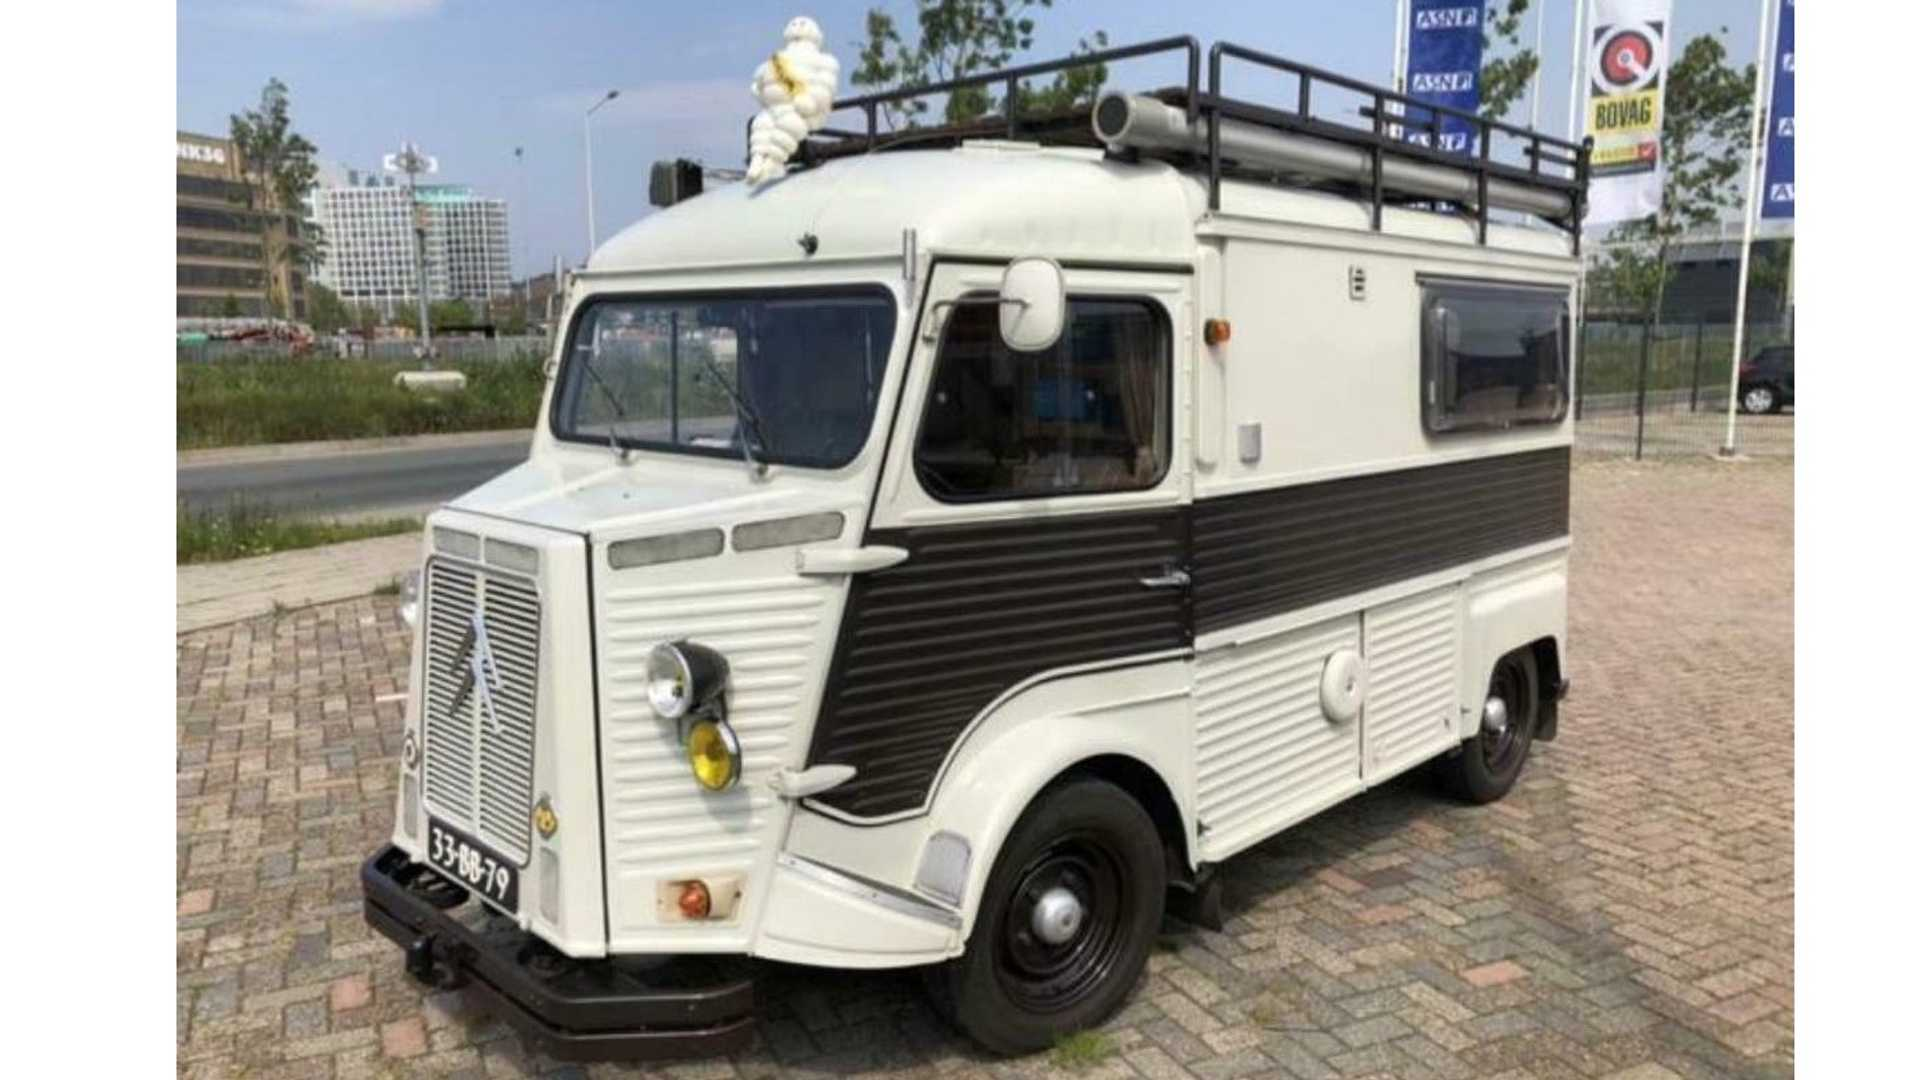 1977 Citroen Camper Van For Sale Is The Cutest Little Thing